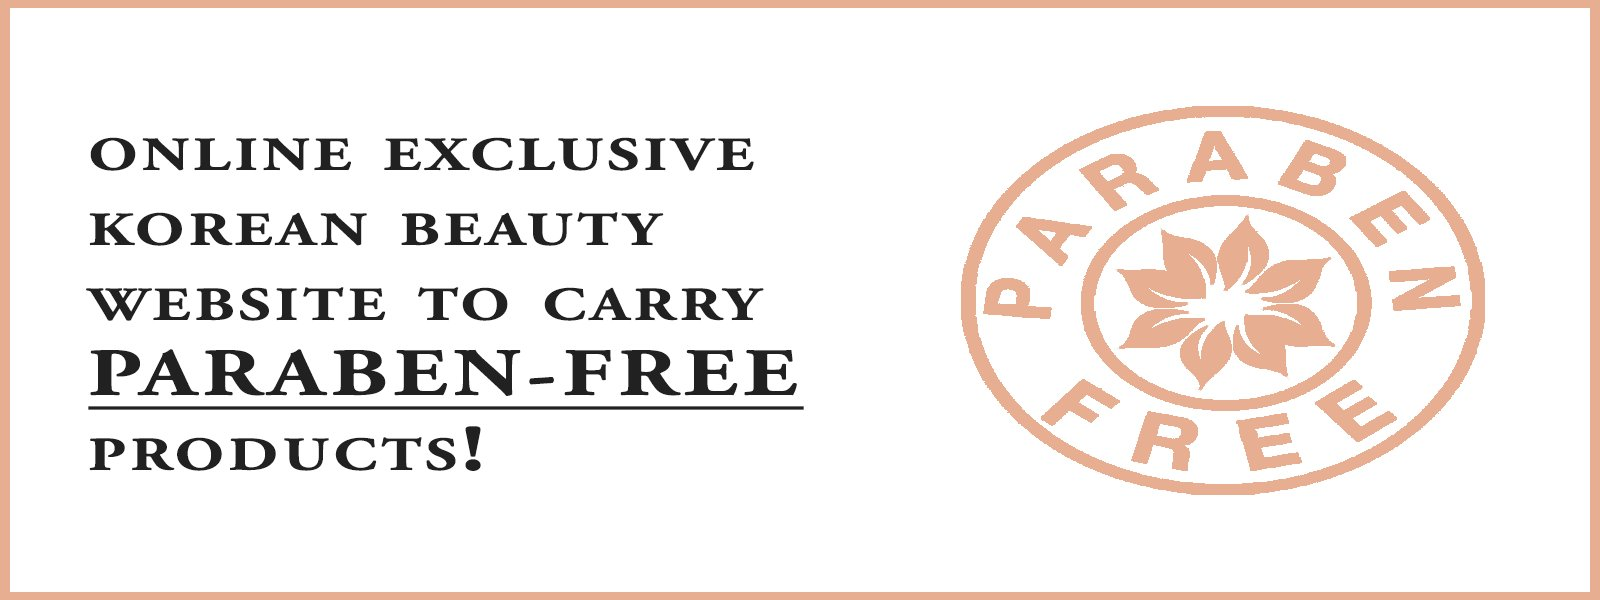 Paraben-Free Website